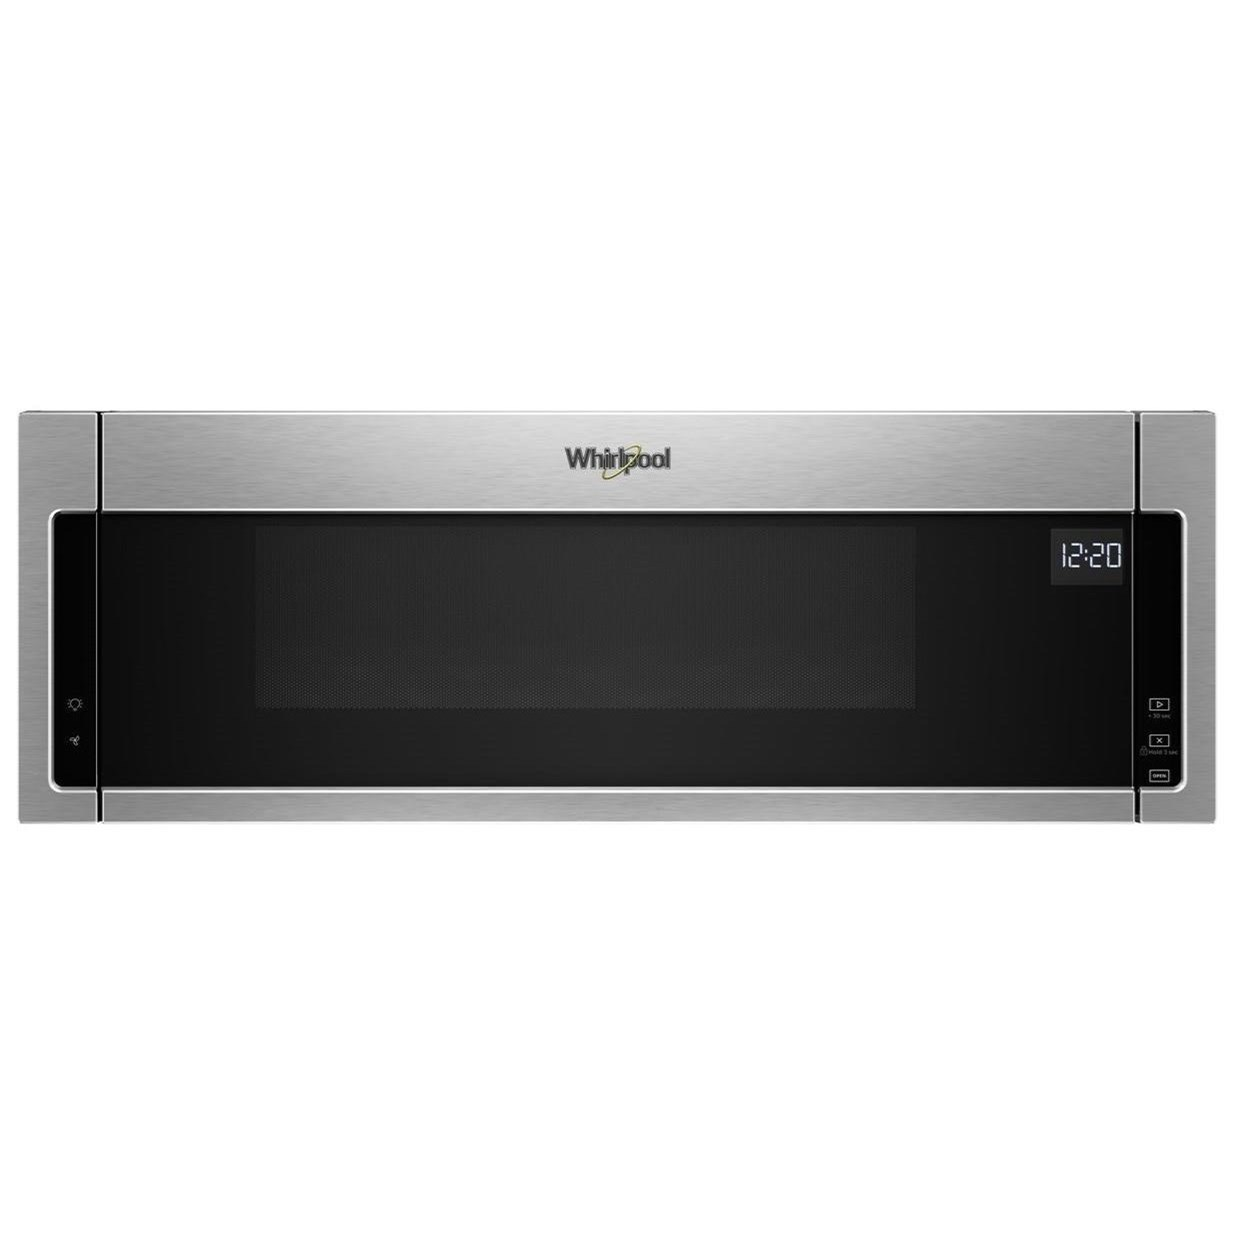 Microwaves - Whirlpool 1.1 cu. ft. Low Profile Microwave by Whirlpool at Furniture and ApplianceMart